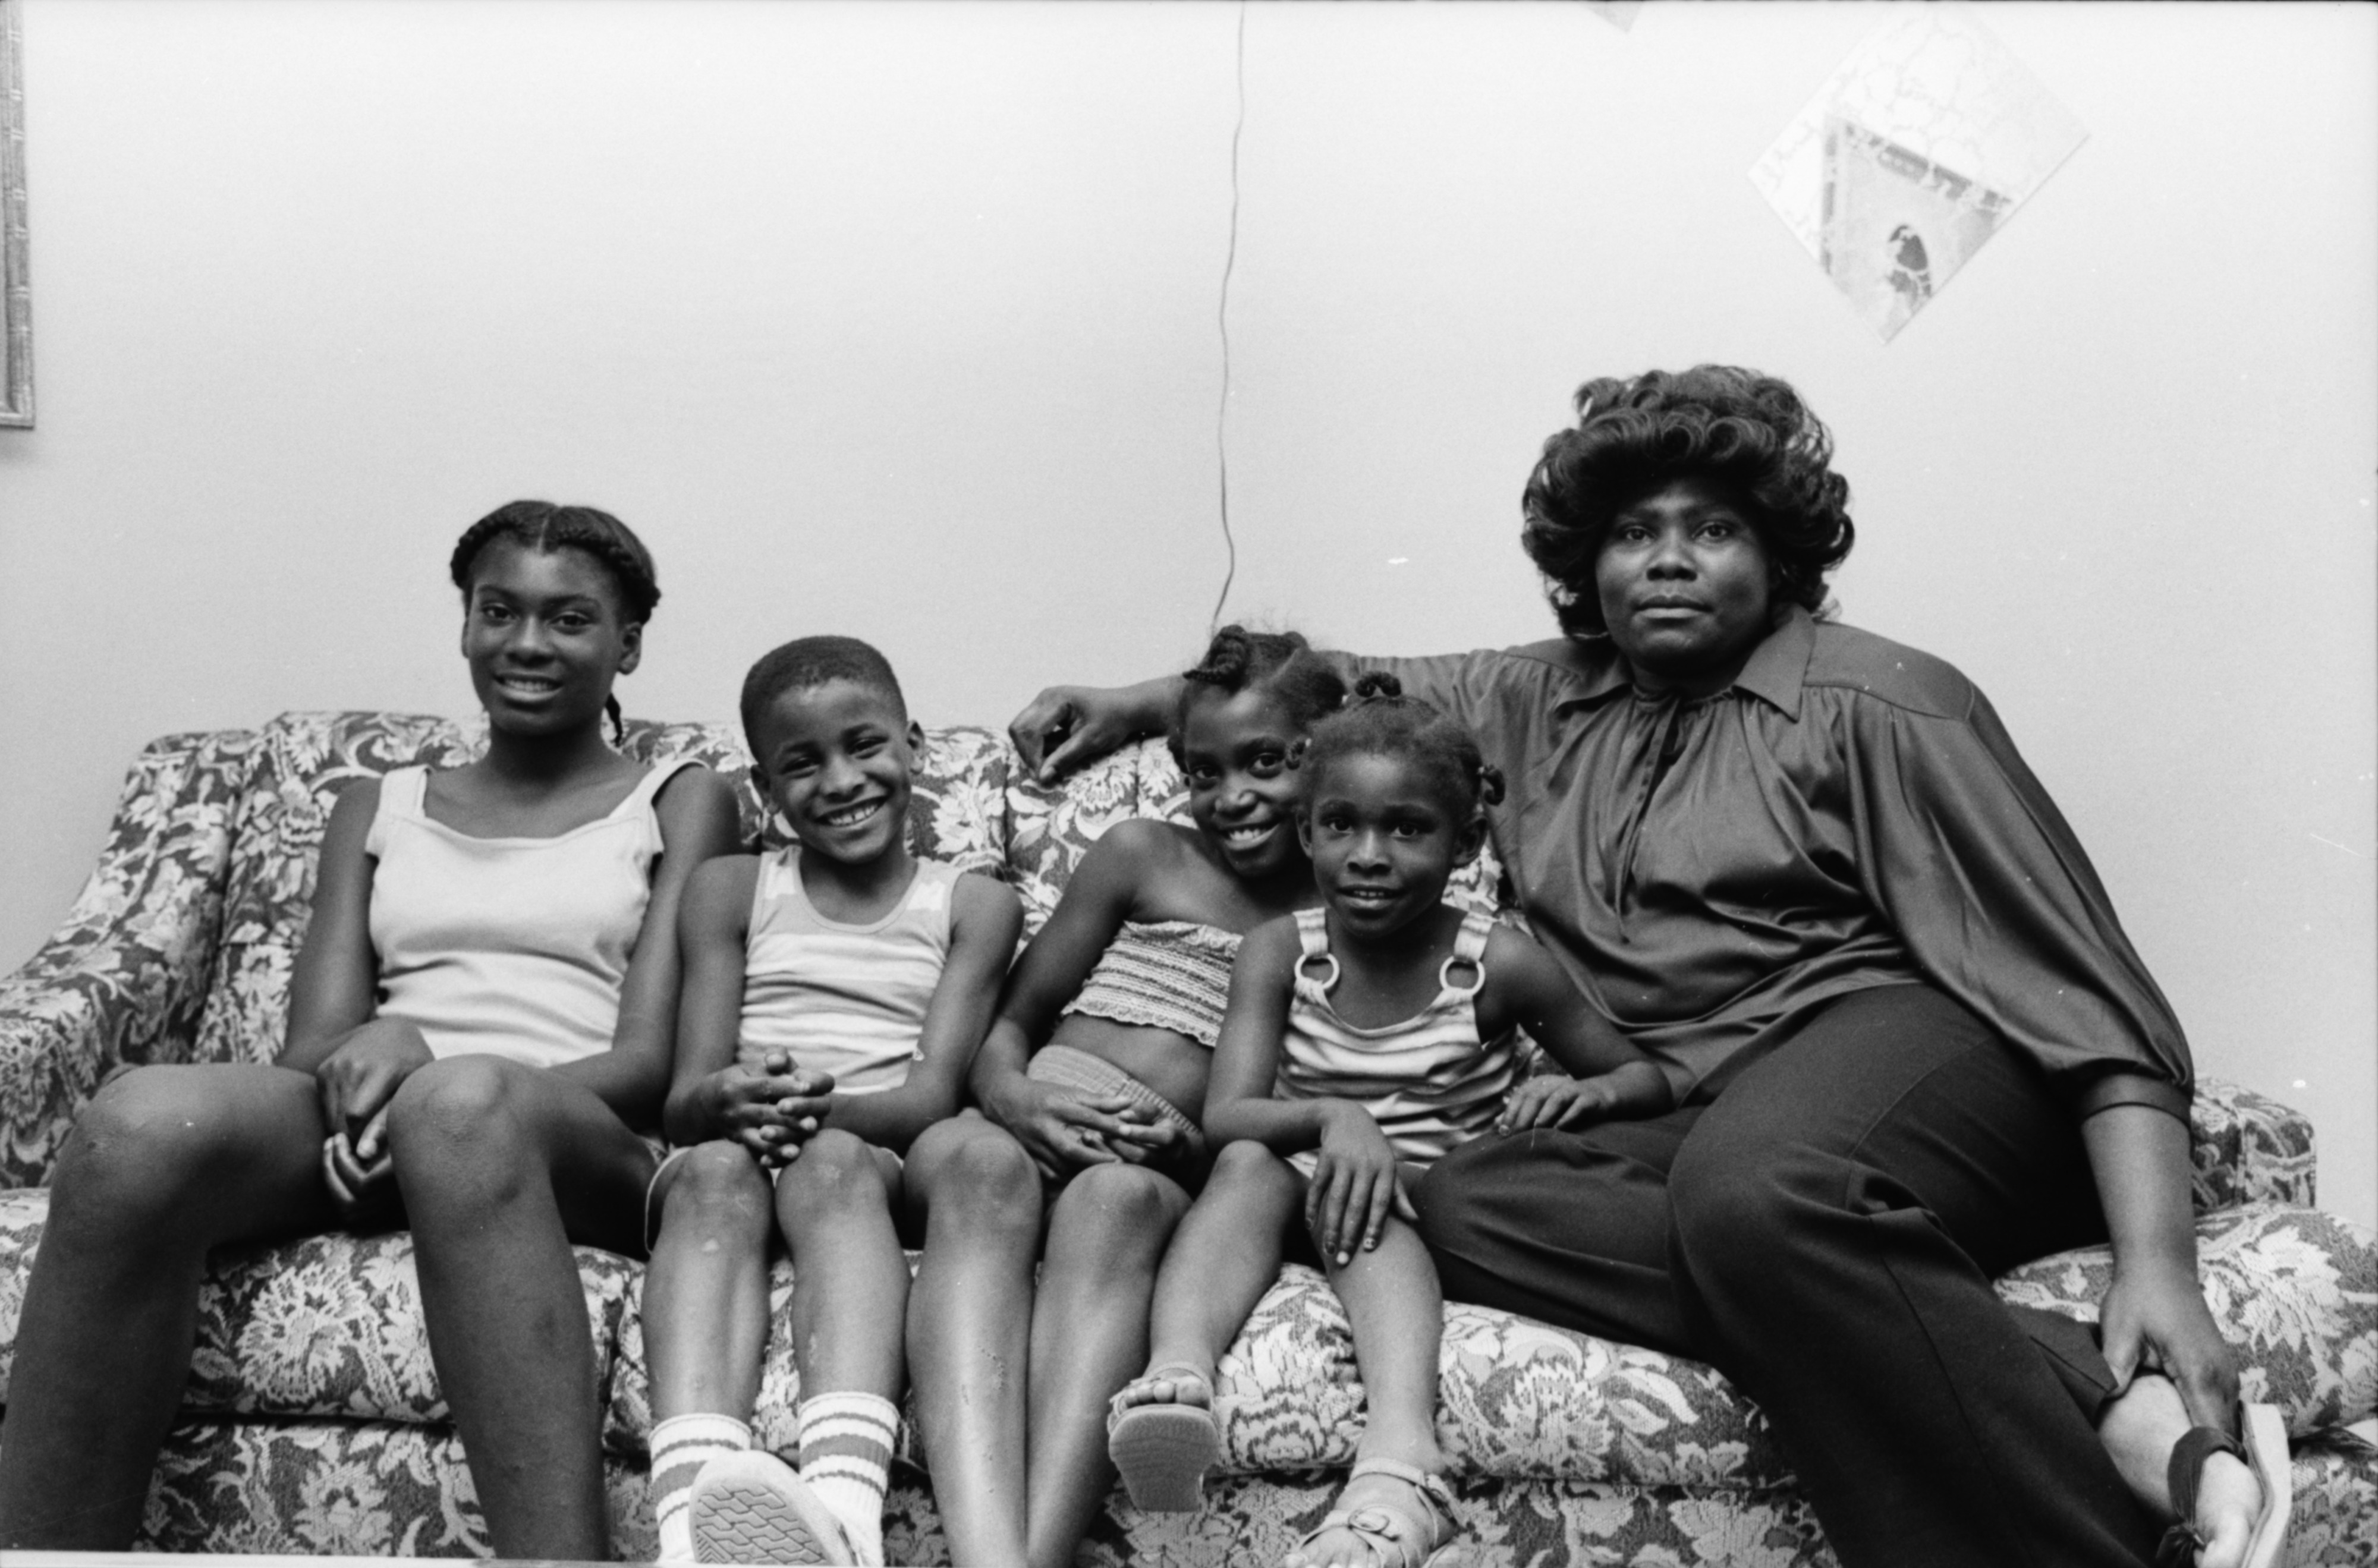 Betty Davis and her Family, July 1979 image